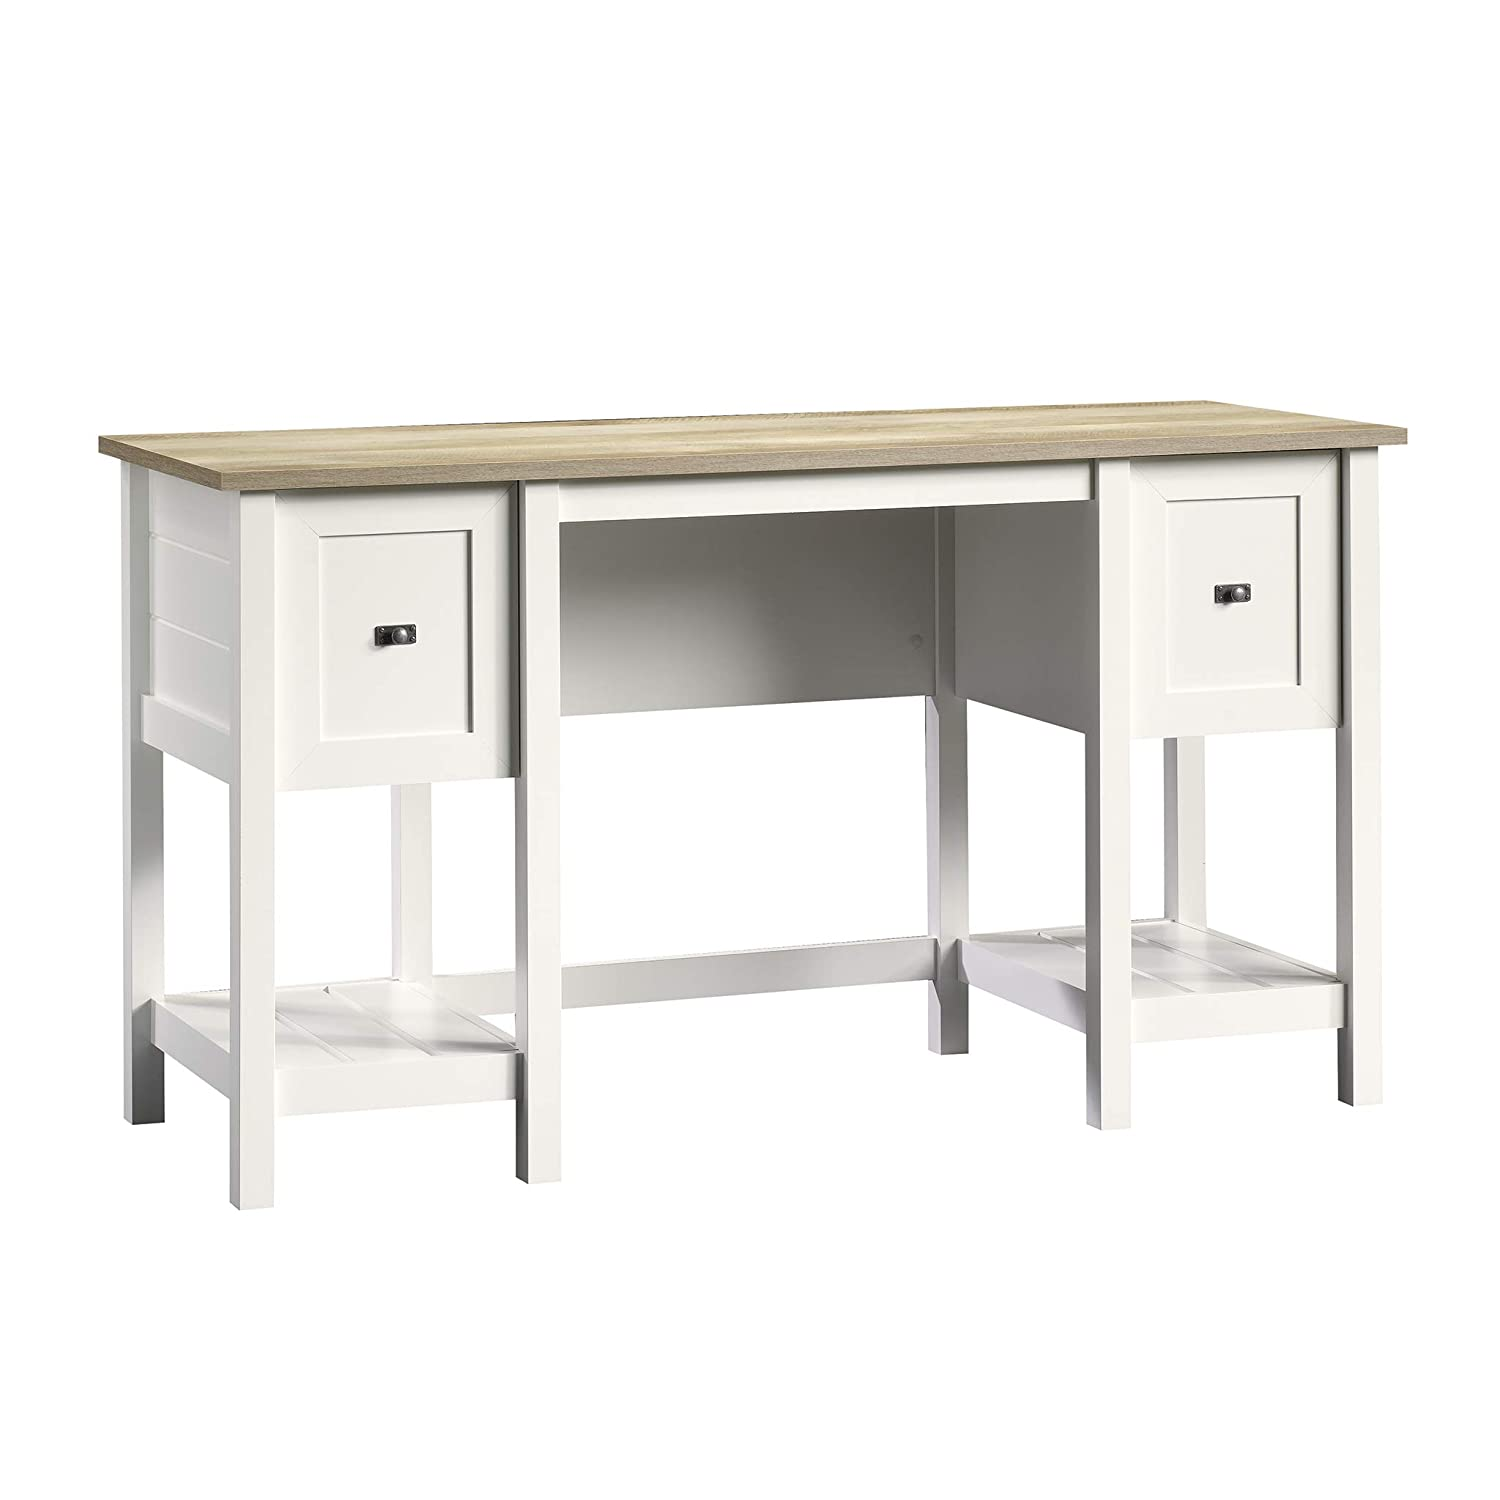 Sauder 418072 Cottage Road Desk, L: 53.937